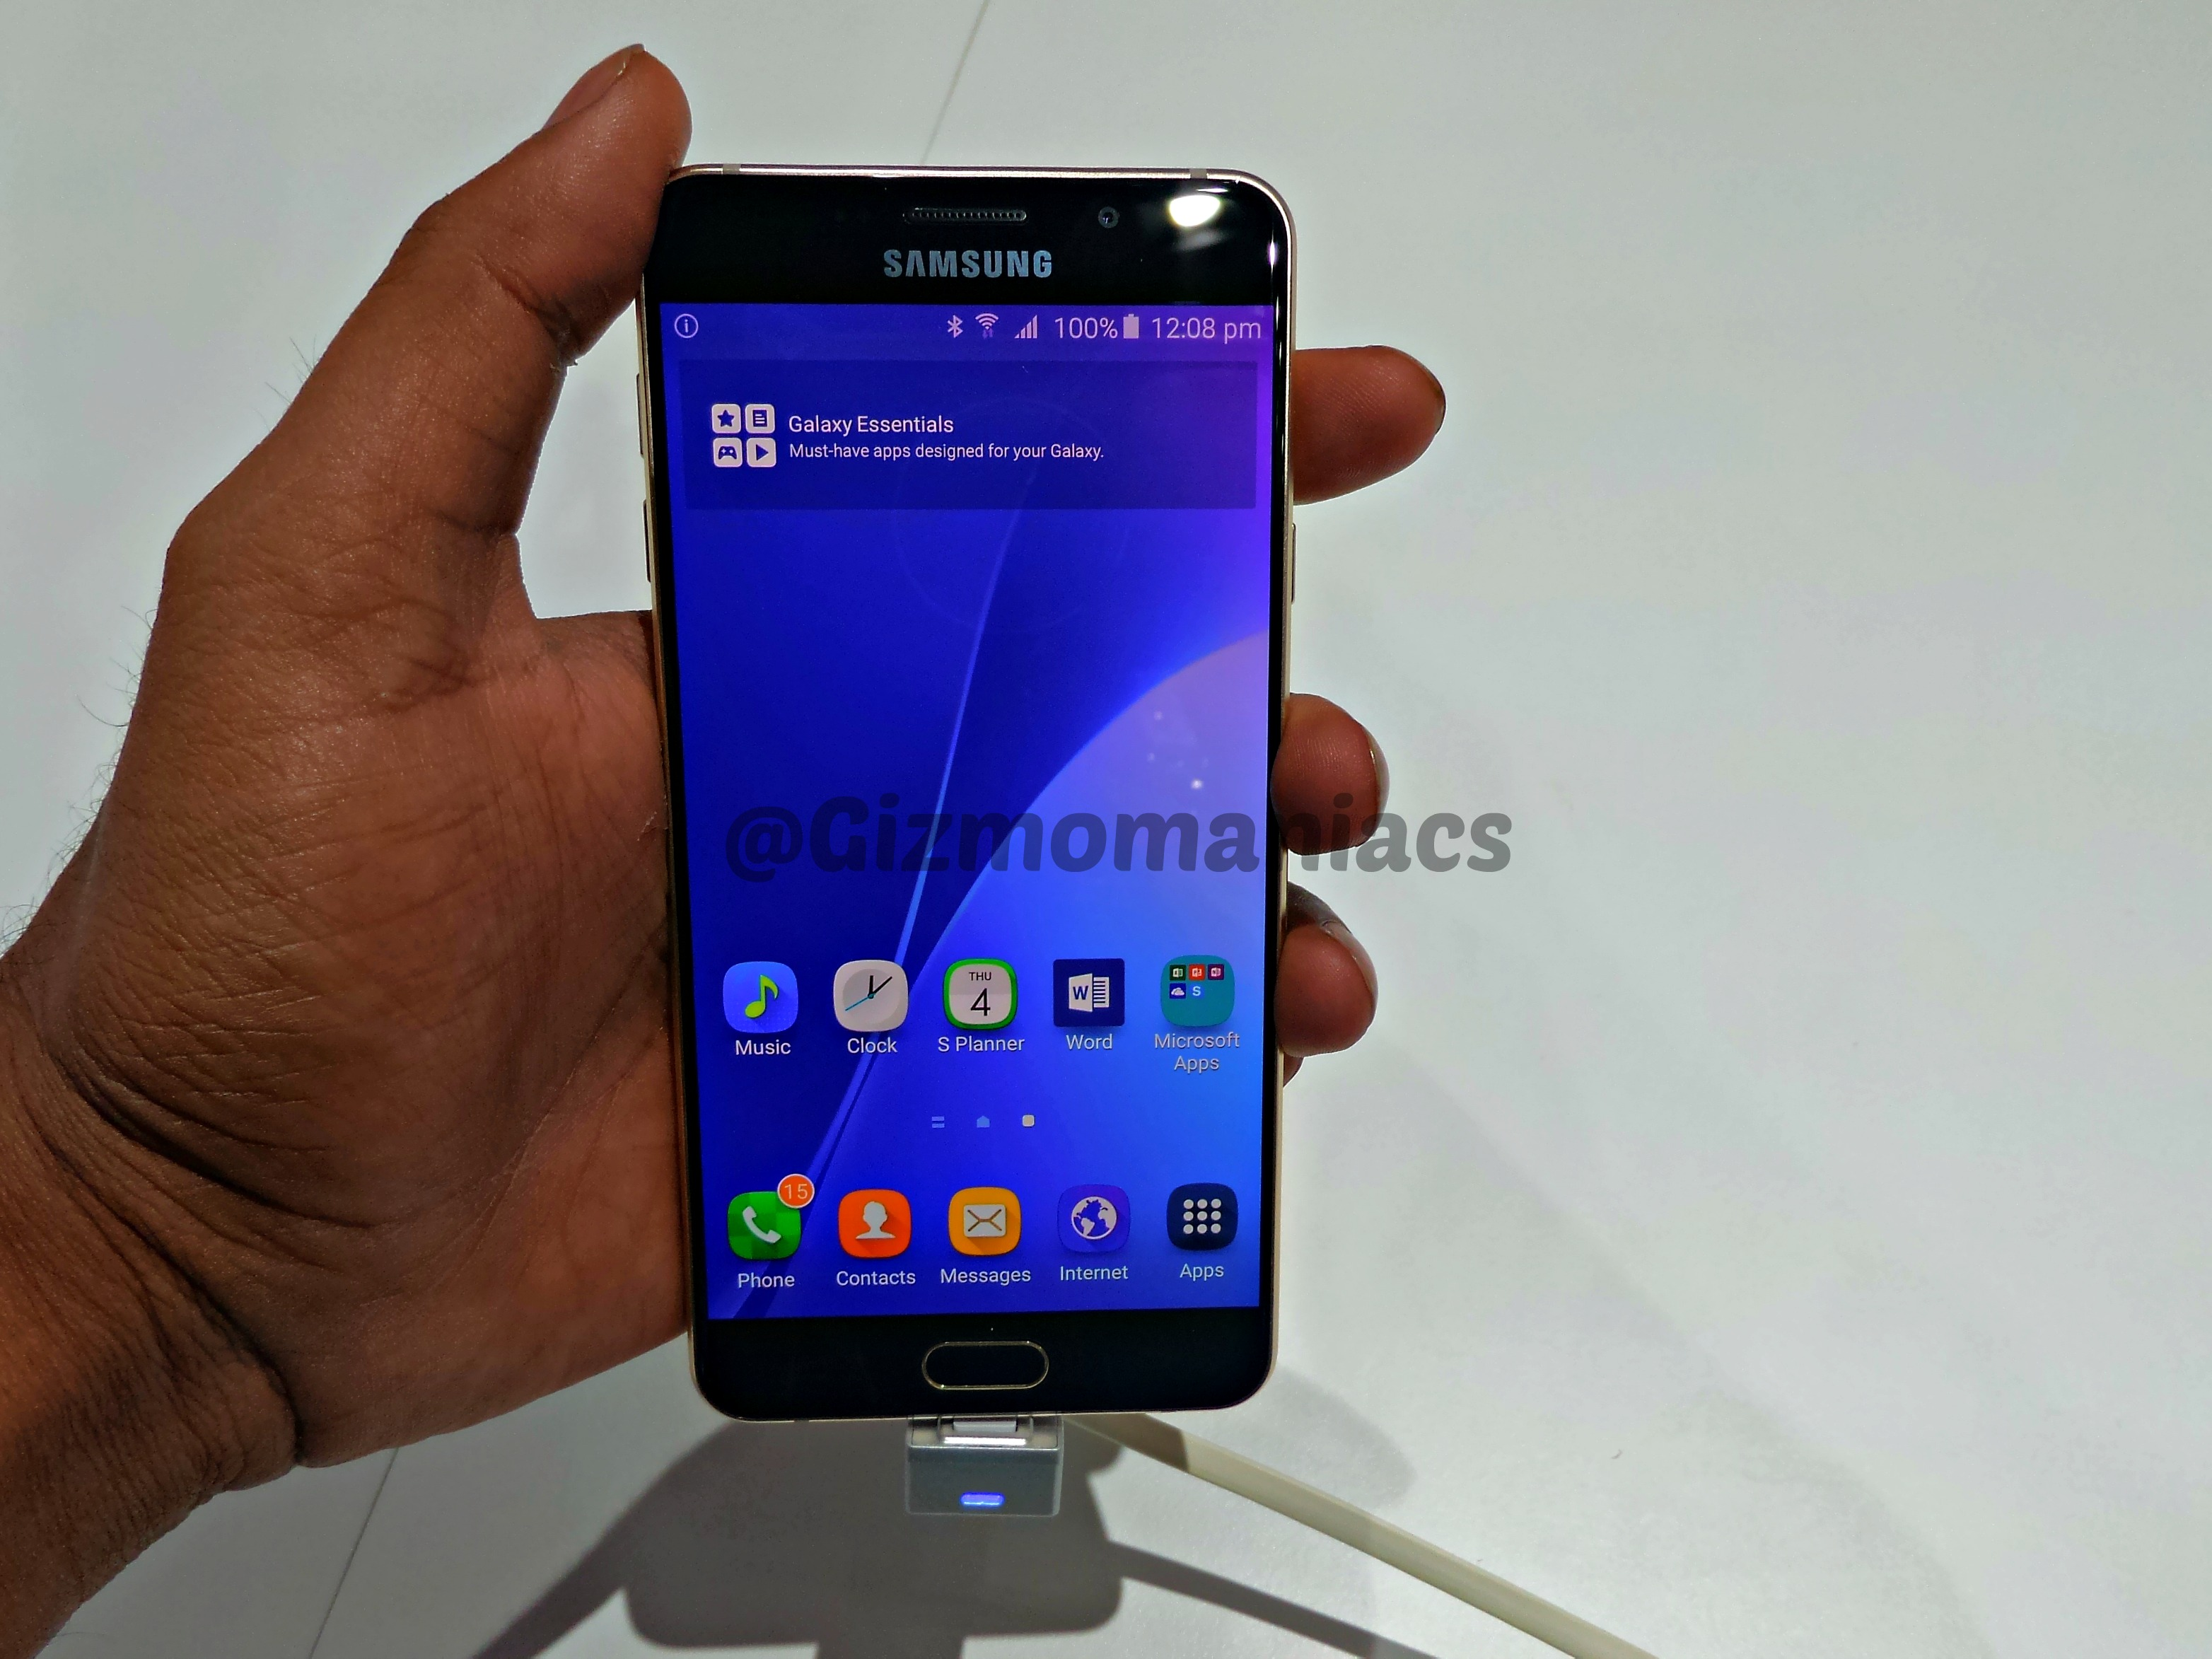 Samsung Galaxy A5 And A7 2016 Edition Is Official For India 16gb P 20160204 120852 The